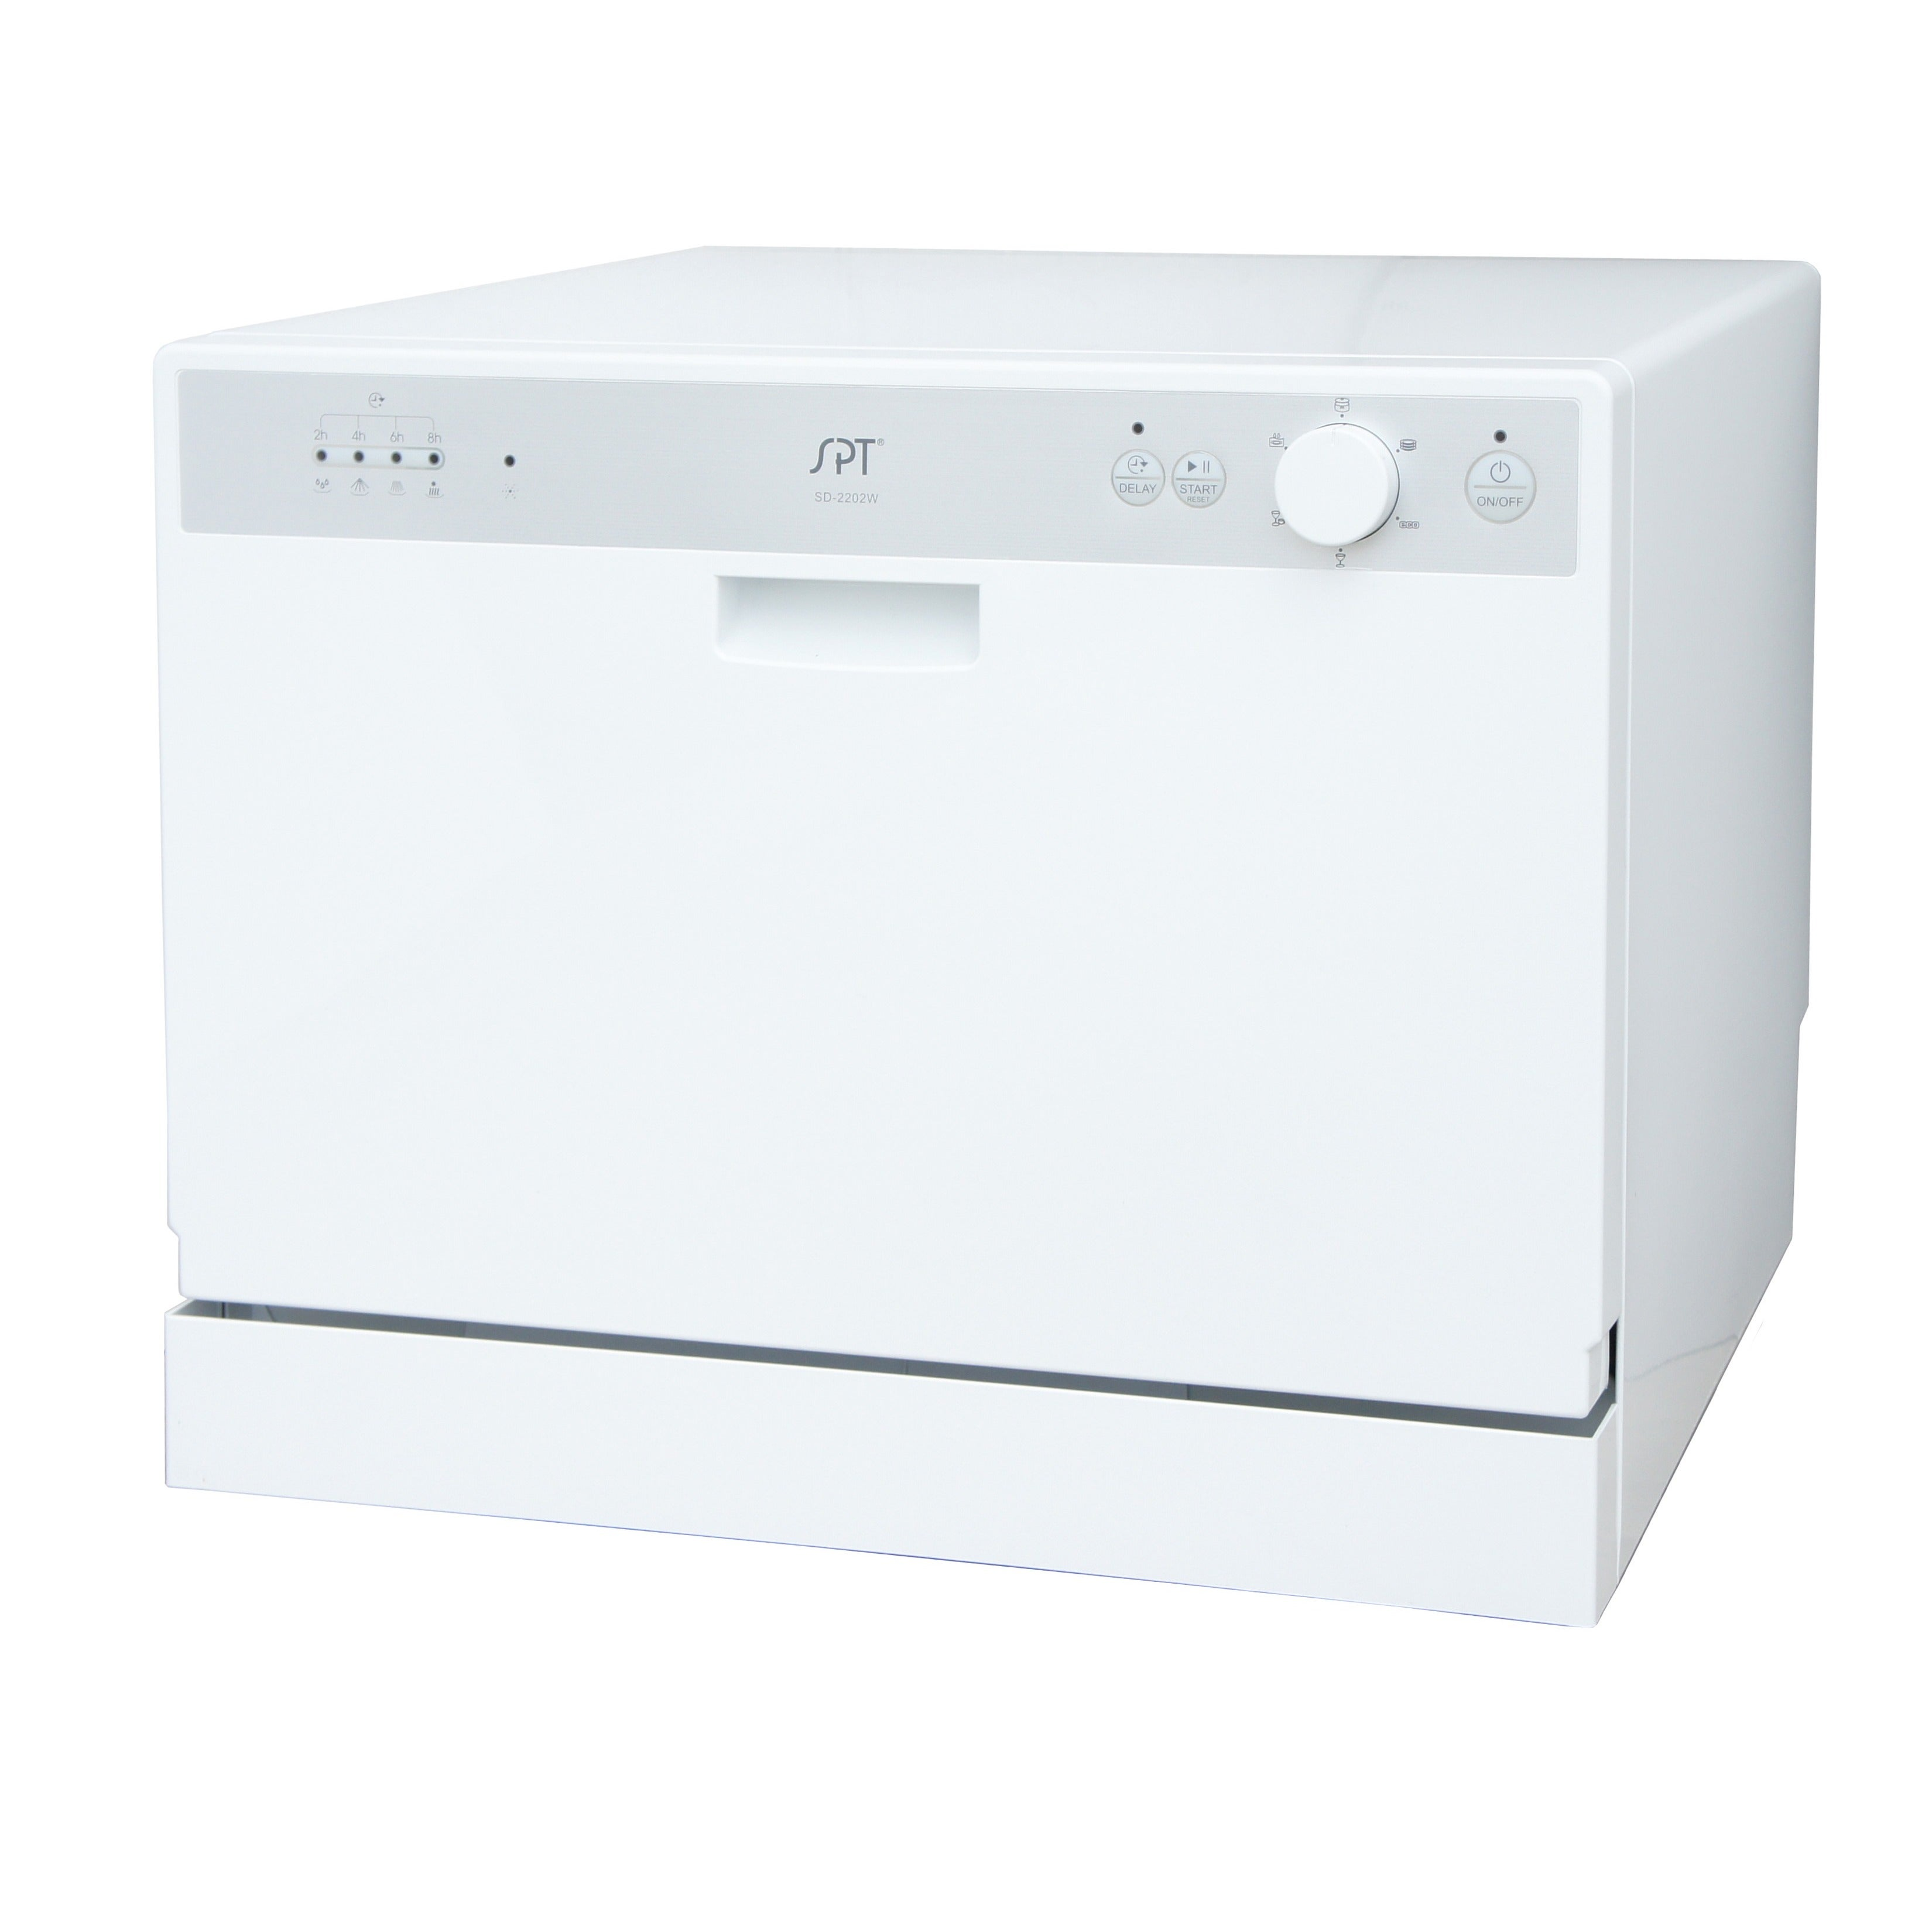 SPT SD-2202W White Countertop Dishwasher with Delay Start...